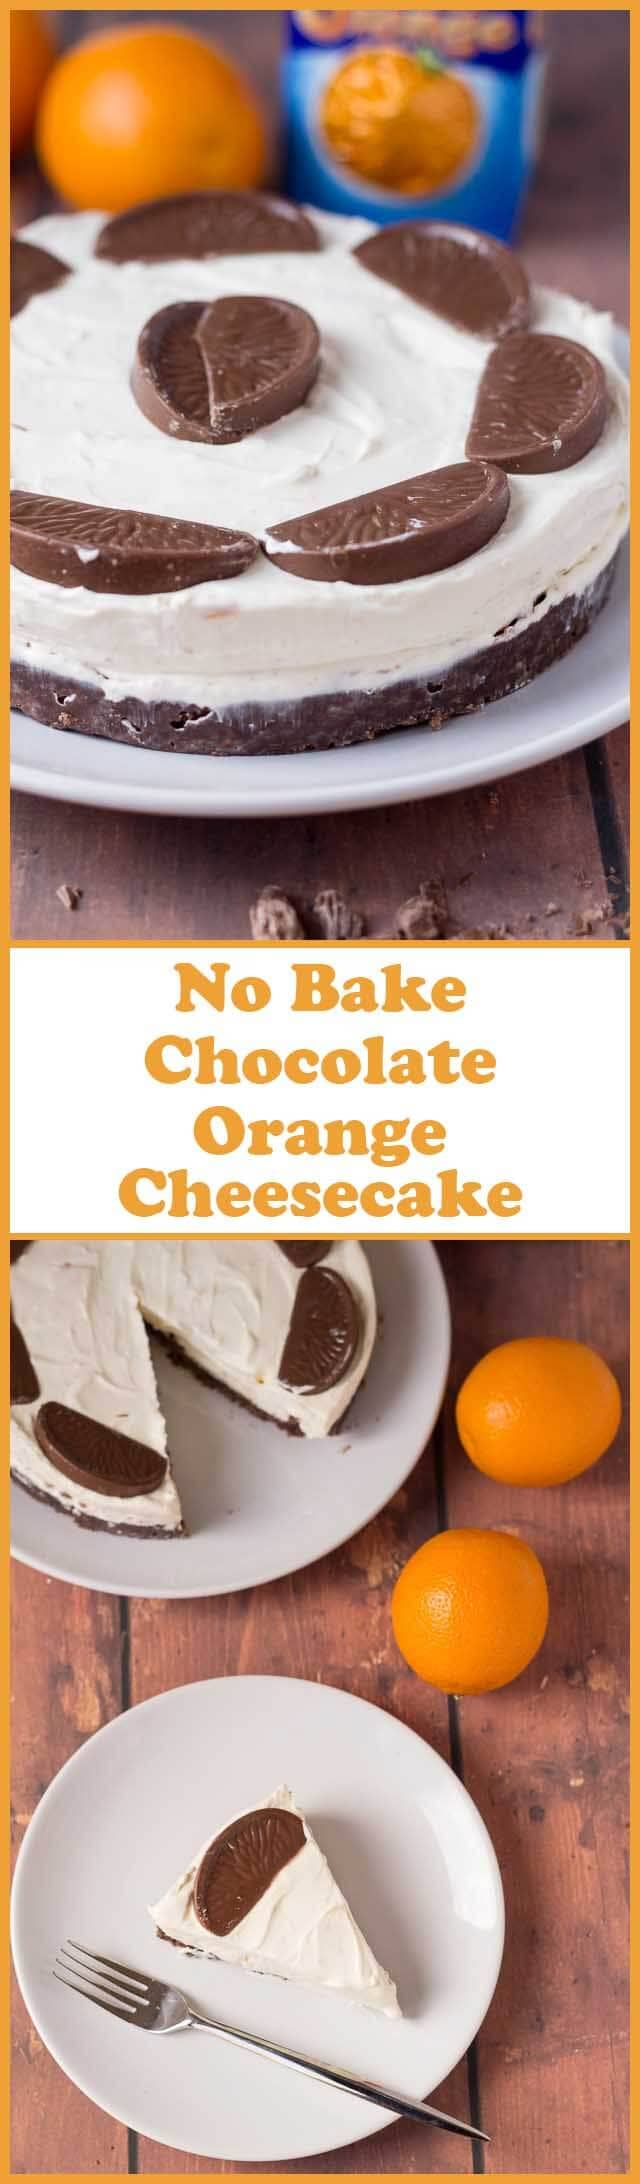 No bake chocolate orange cheesecake. Smooth and luxurious; delicious and indulgent but remarkably simple to make. Perfect for Christmas or dinner parties!